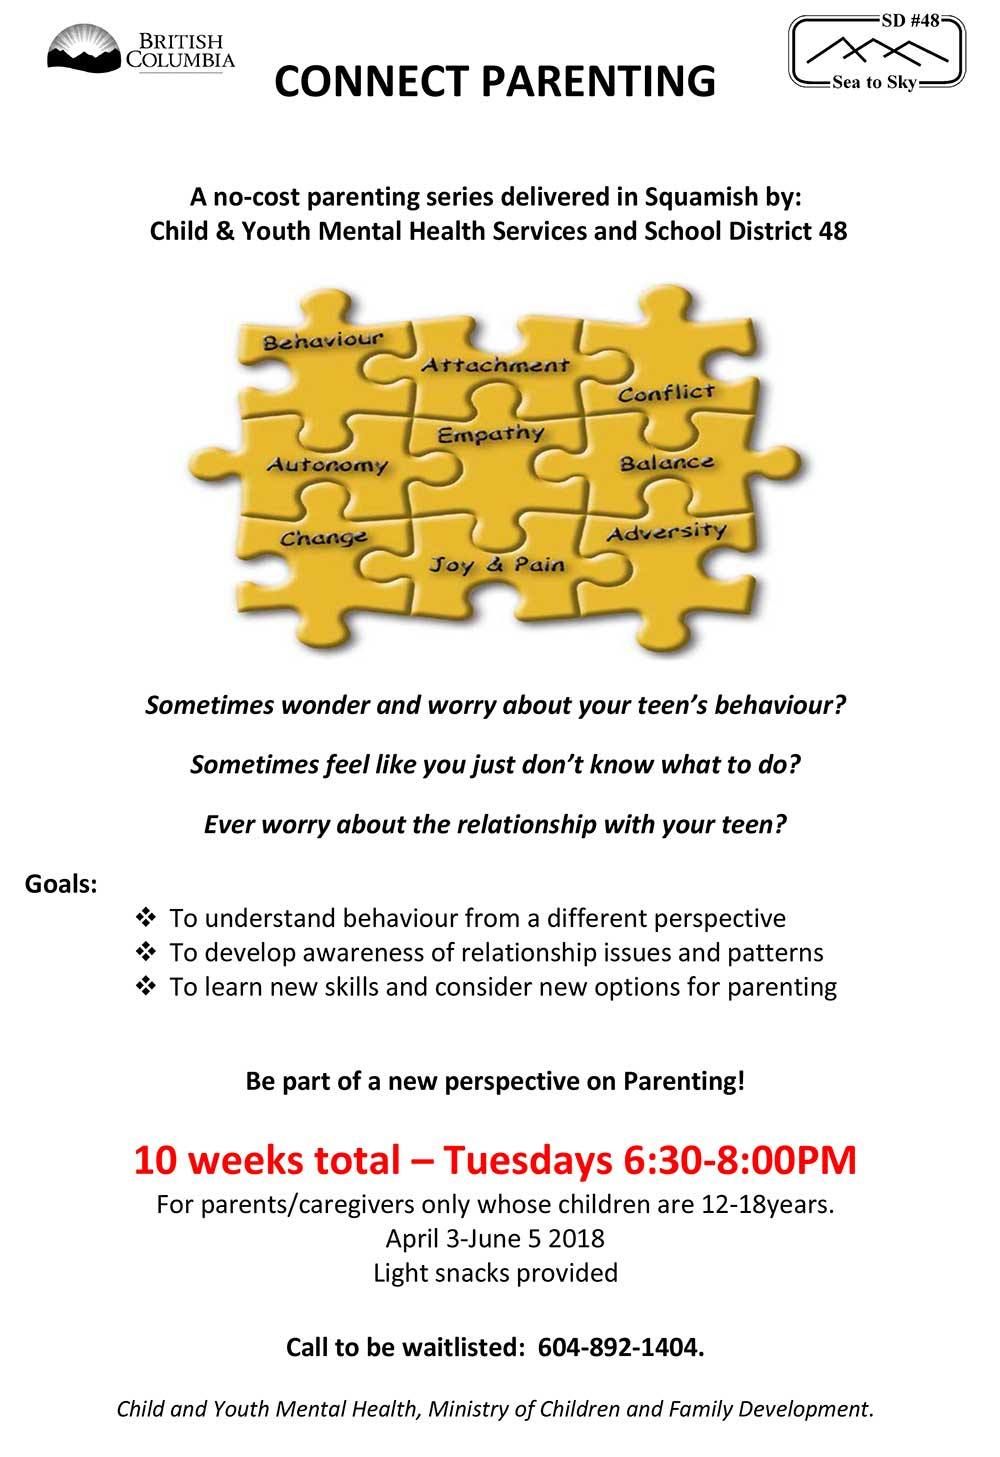 CONNECT-Parenting-Education-Series-MCFD-sd48-Spring-2018